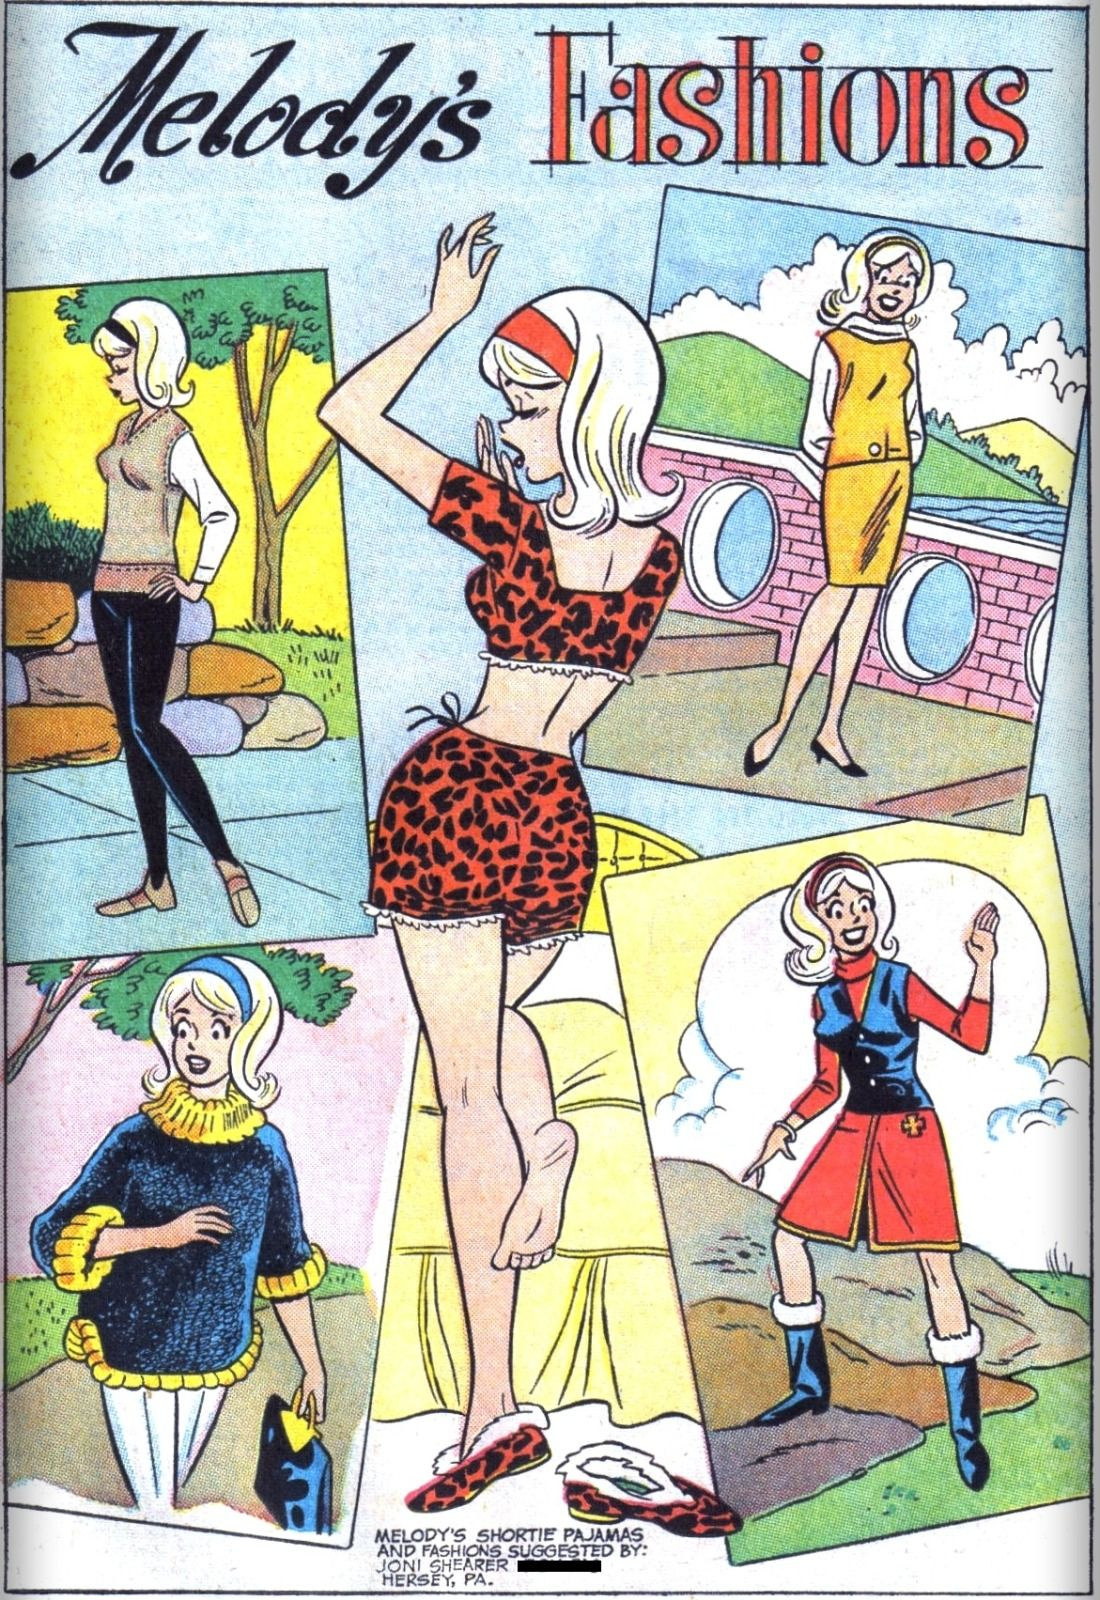 Pin by Melvin Lamb on aLL aBOUT aLEXANDRA | Archie comic